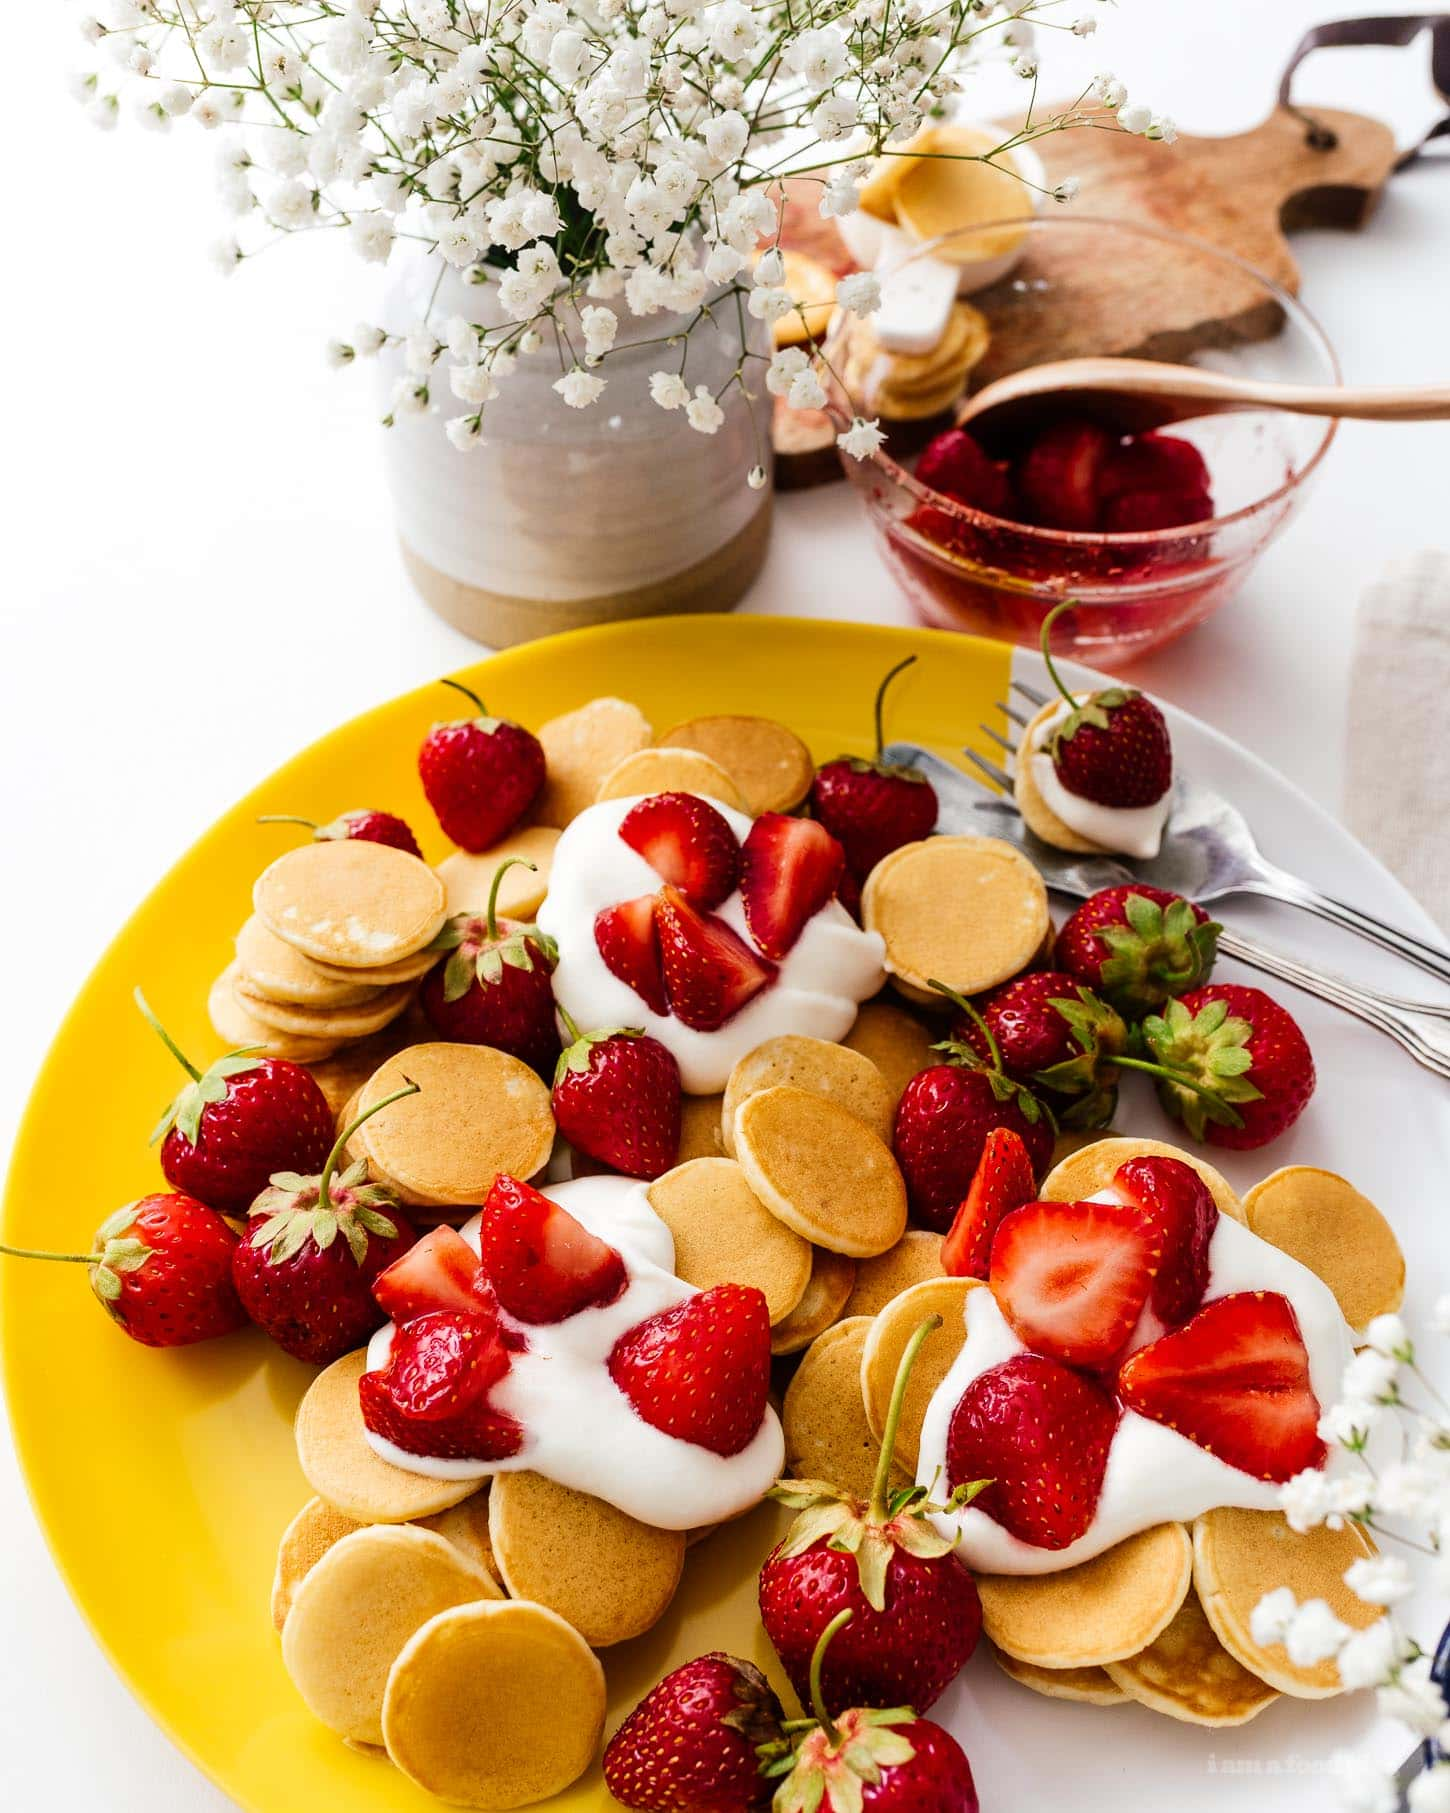 This fluffy mini strawberry shortcake pancake recipe is perfect for summer. Super cute mini silver dollar vanilla pancakes topped with juicy strawberries and softly whipped cream. Like a strawberry shortcake for breakfast! #strawberries #strawberry #strawberrypancakes #strawberrypancake #strawberryshortcake #strawberryshortcakes